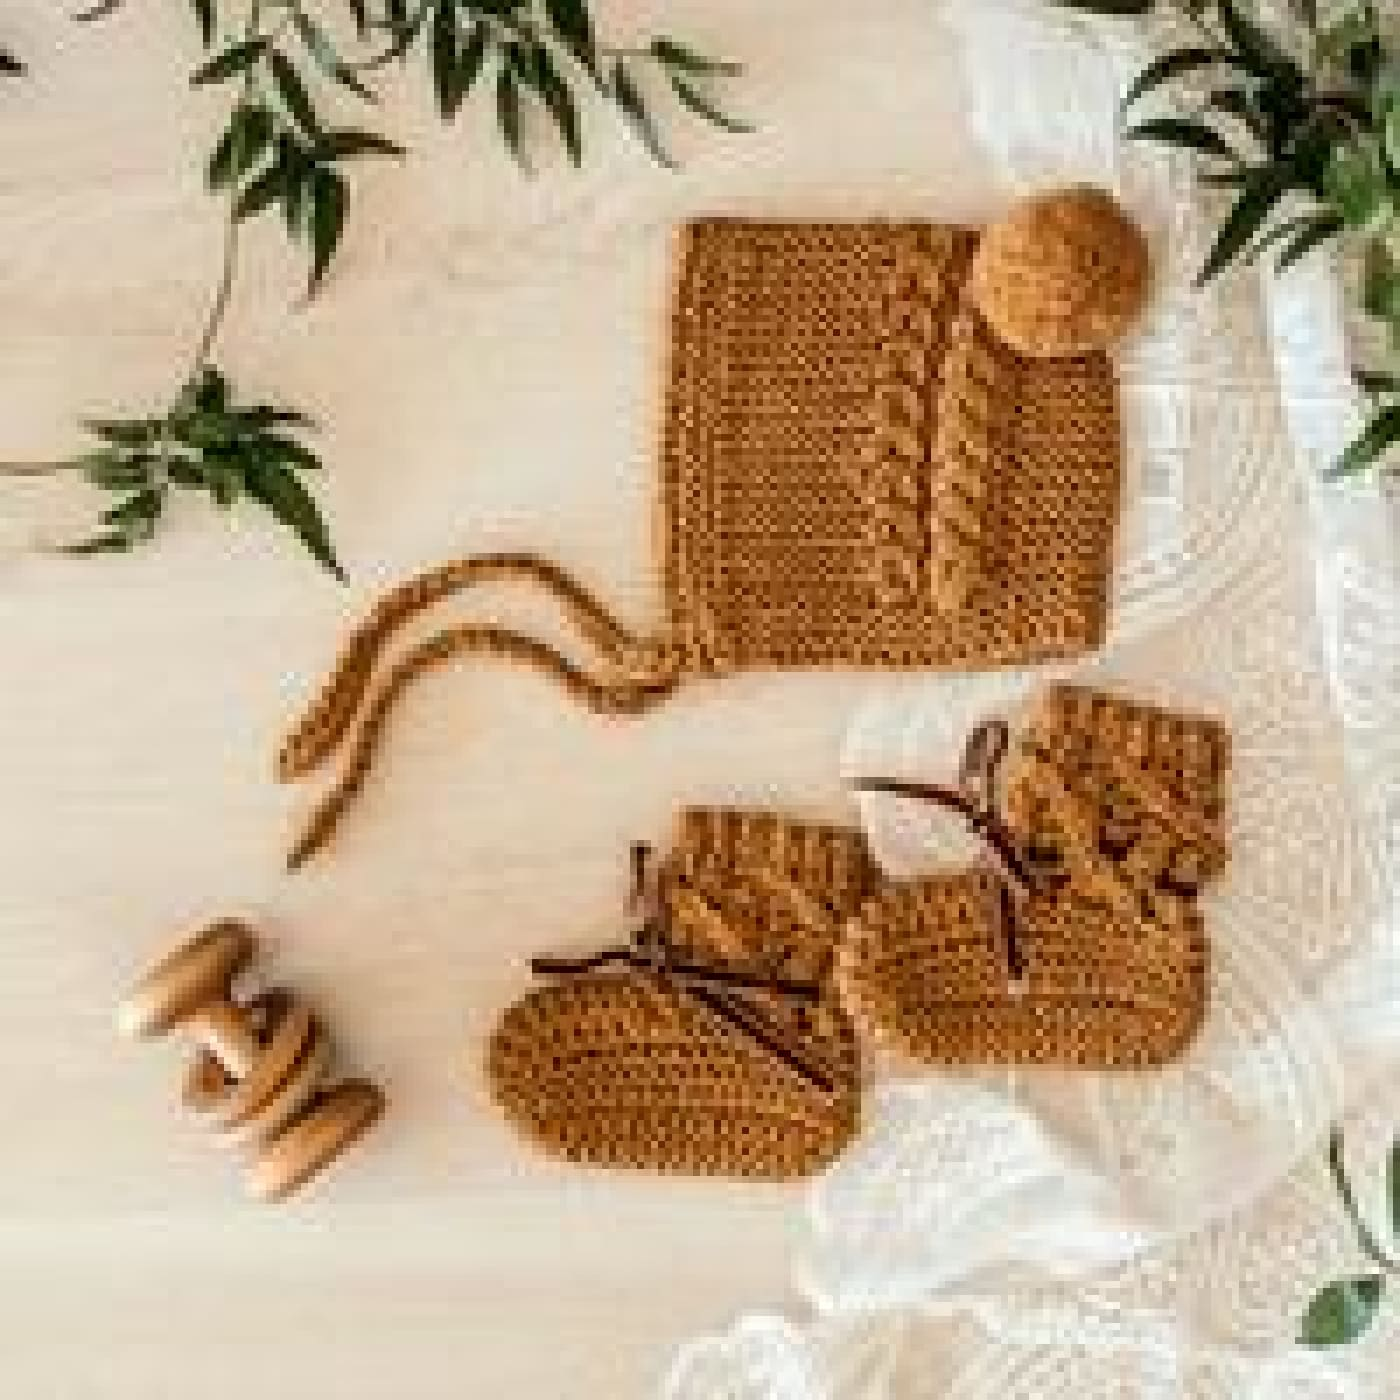 Snuggle Hunny Kids Merino Wool Bonnet & Booties - Bronze - Bronze - BABY & TODDLER CLOTHING - BEANIES/HATS